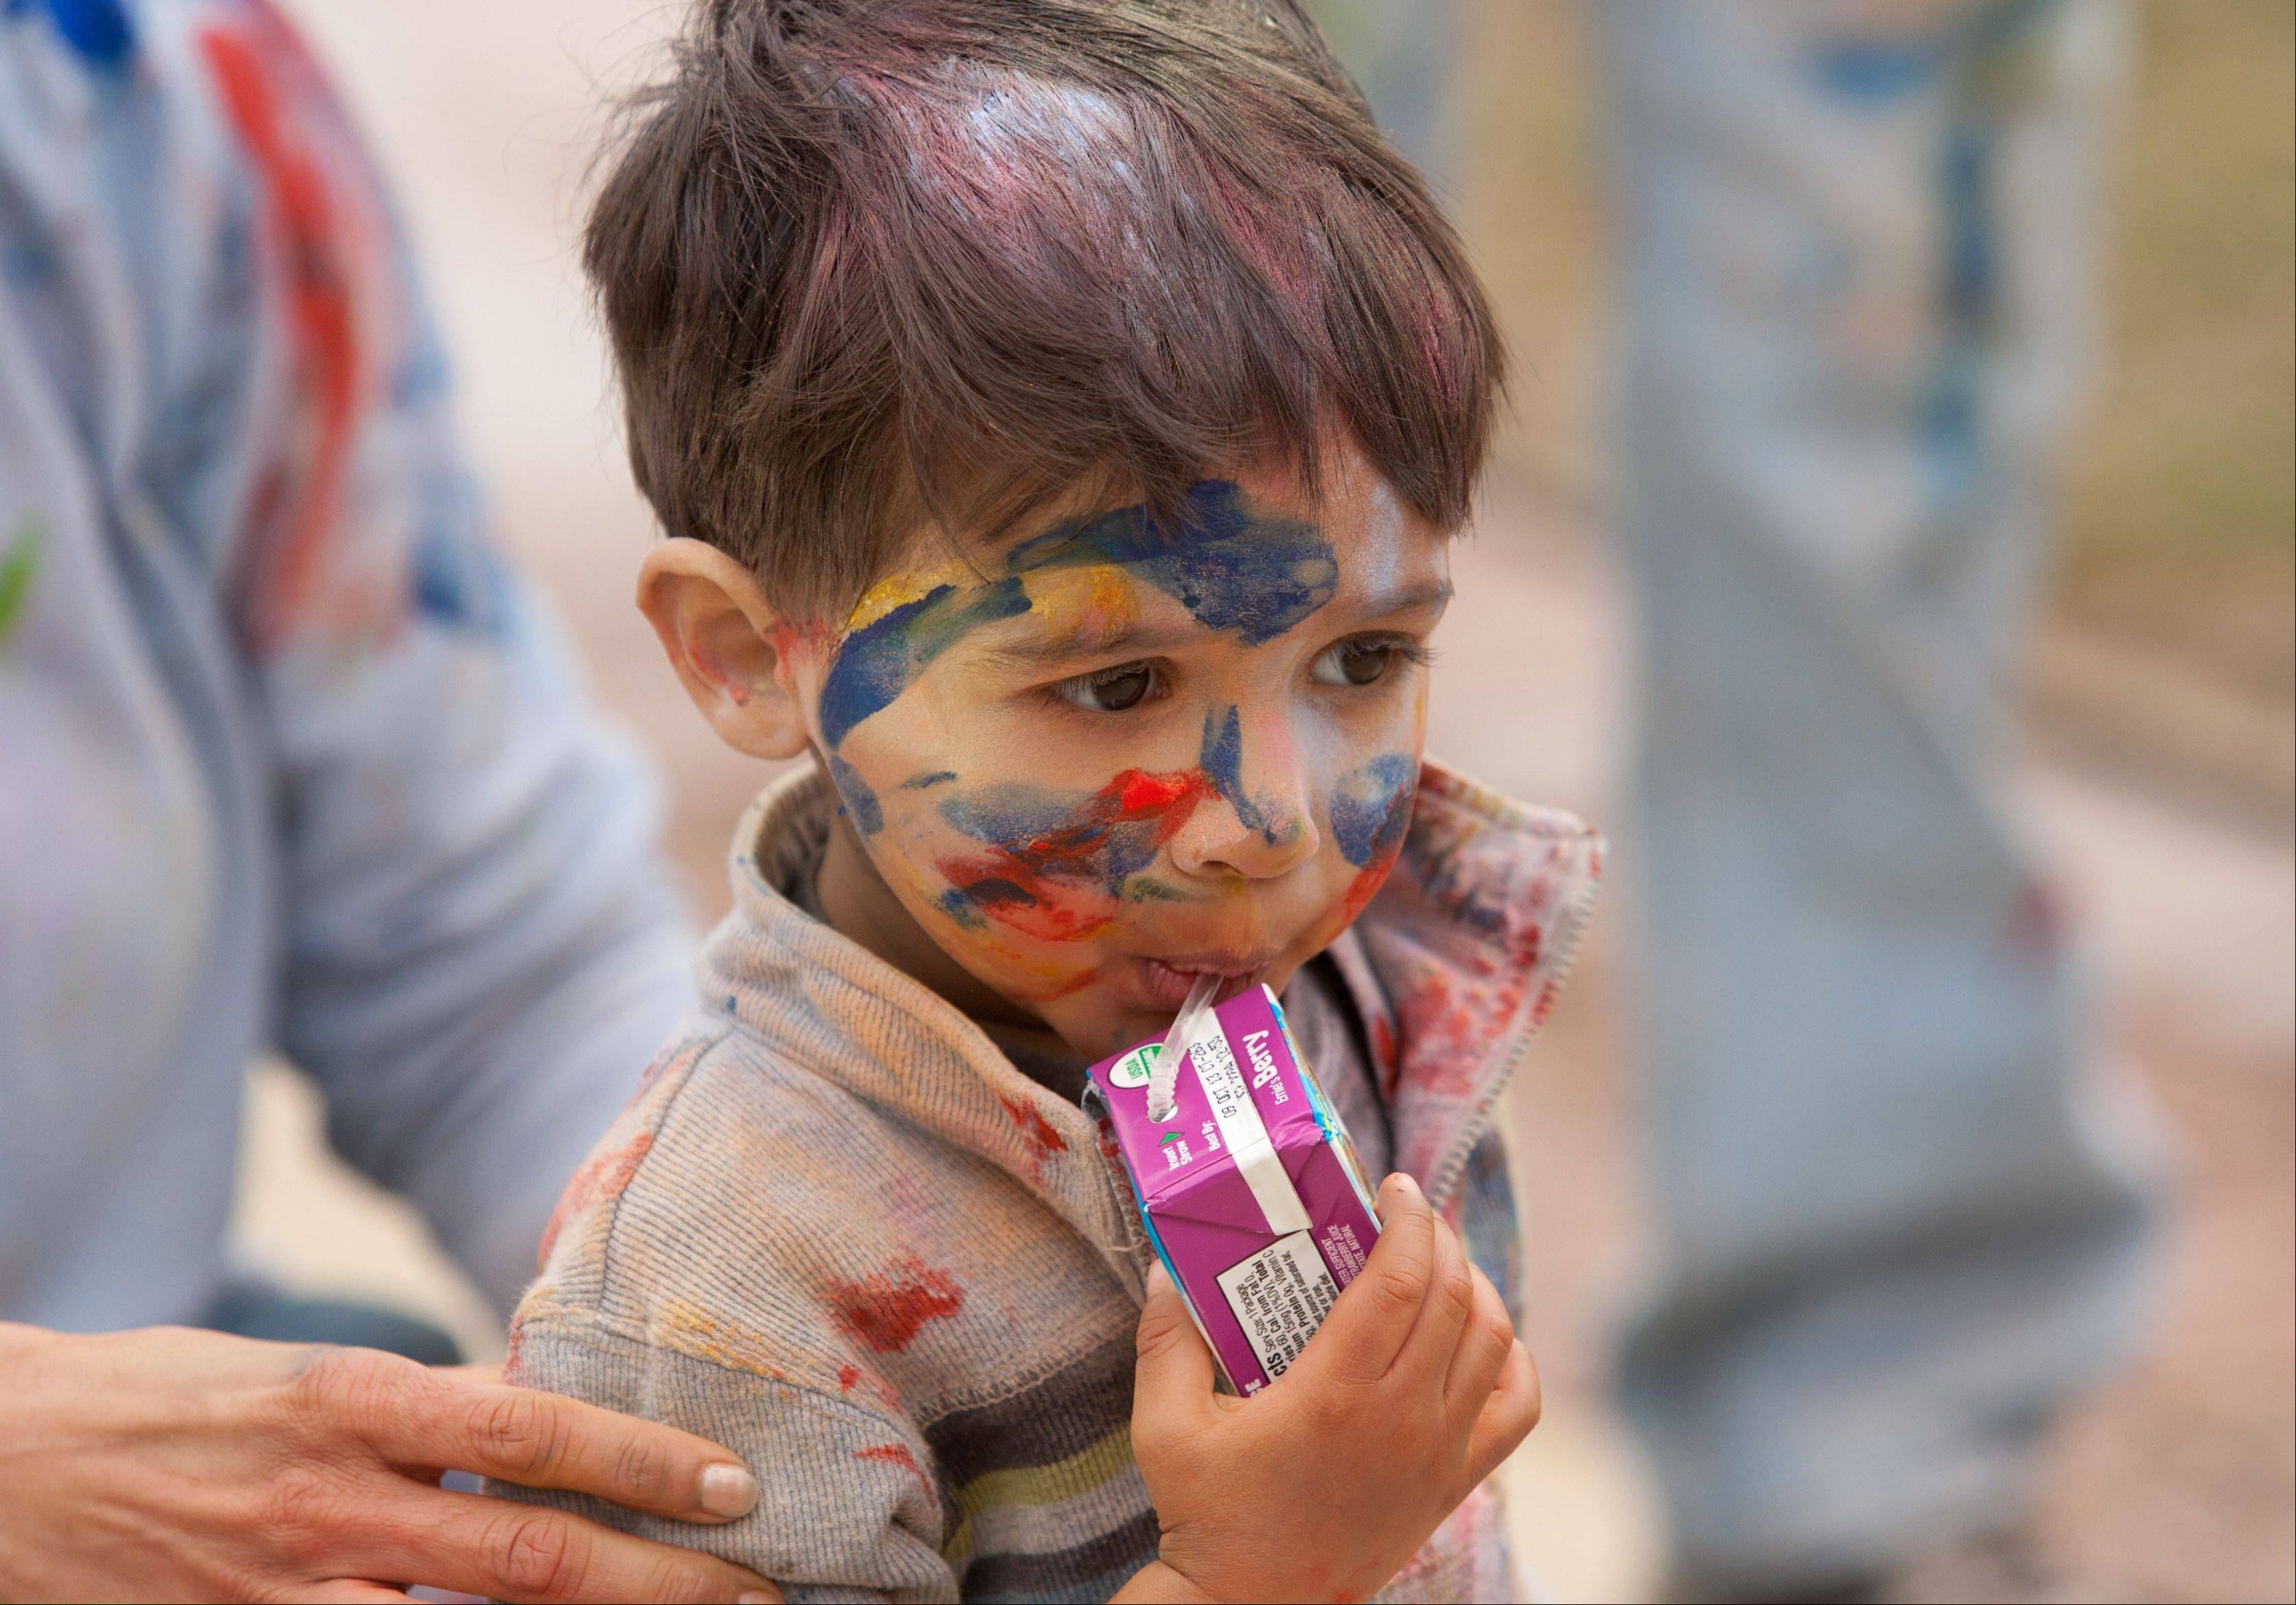 Lokesh Sulkar, 2, of West Chicago pauses for a drink Saturday in Naperville during the Simply Vedic Cultural Society's celebration of the Festival of Colors, or Holi, which marks the passing of winter and arrival of spring.